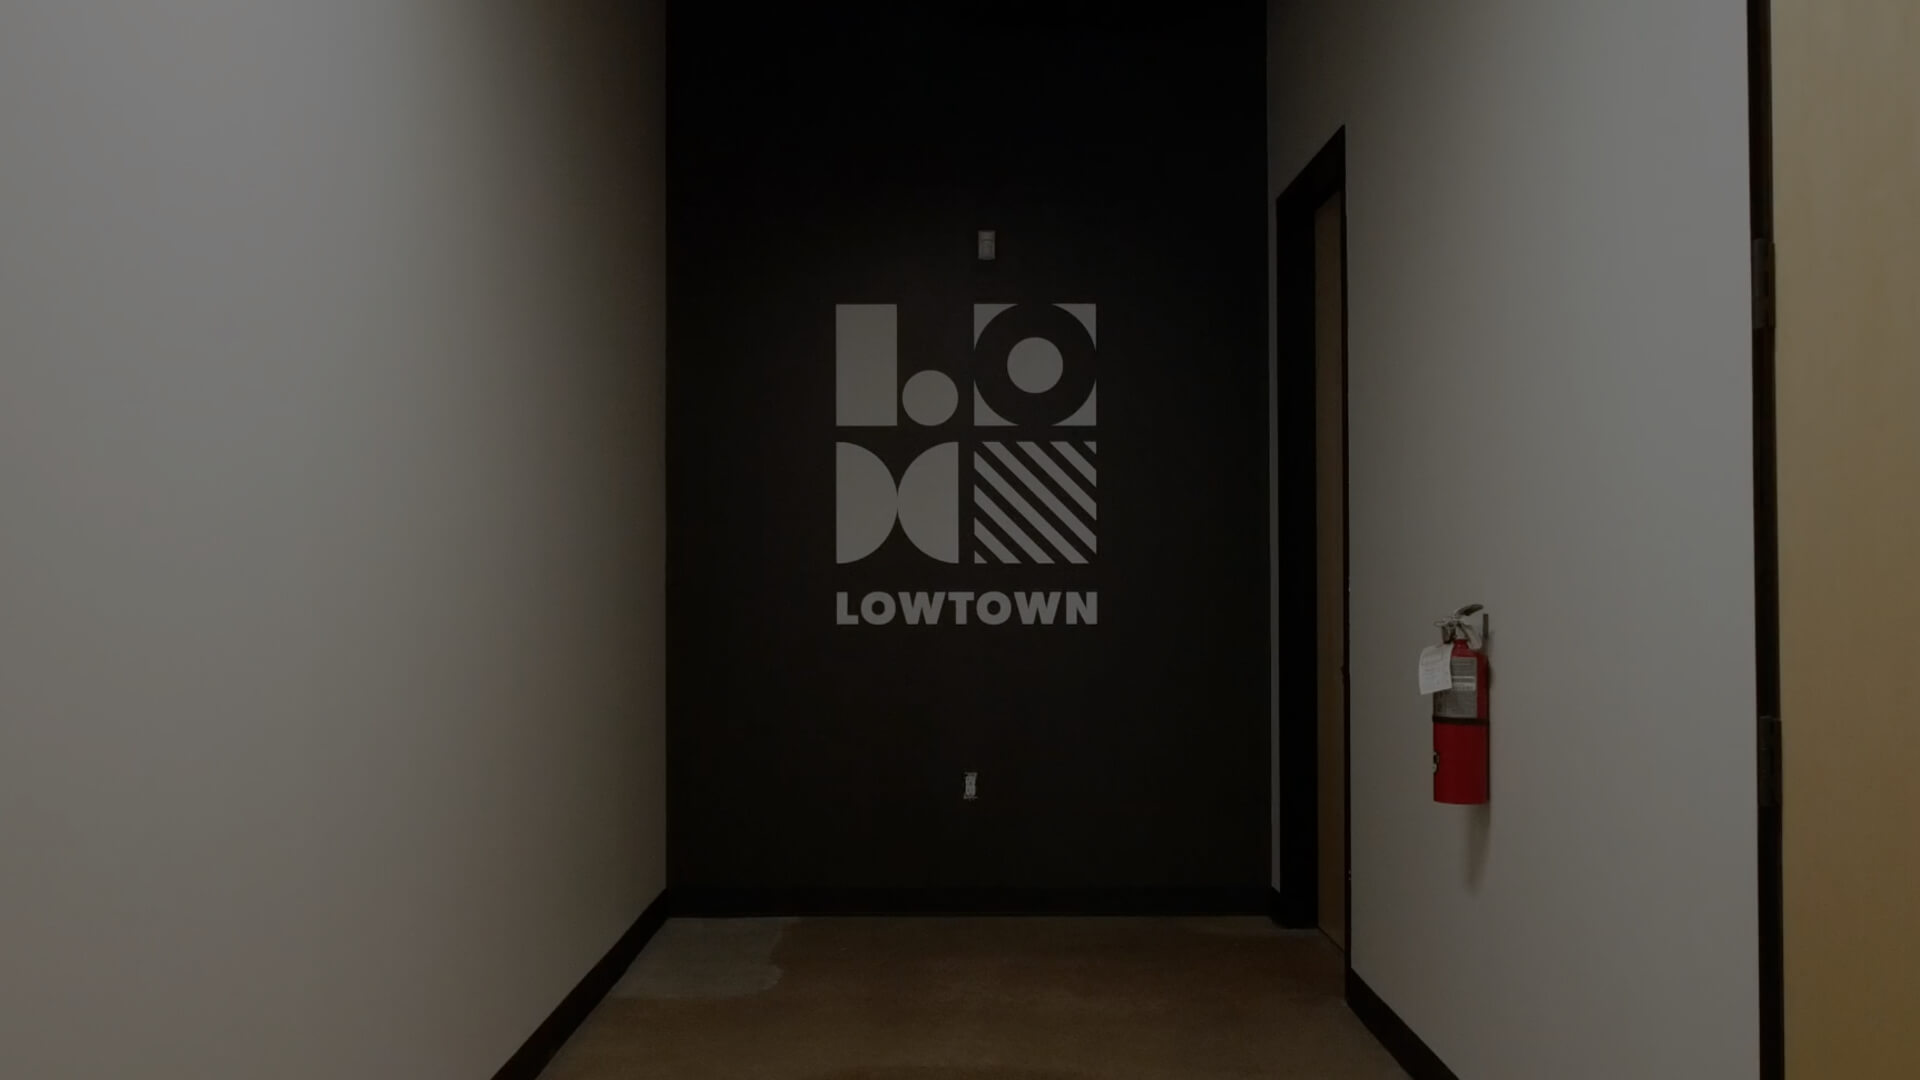 About Lowtown Studios